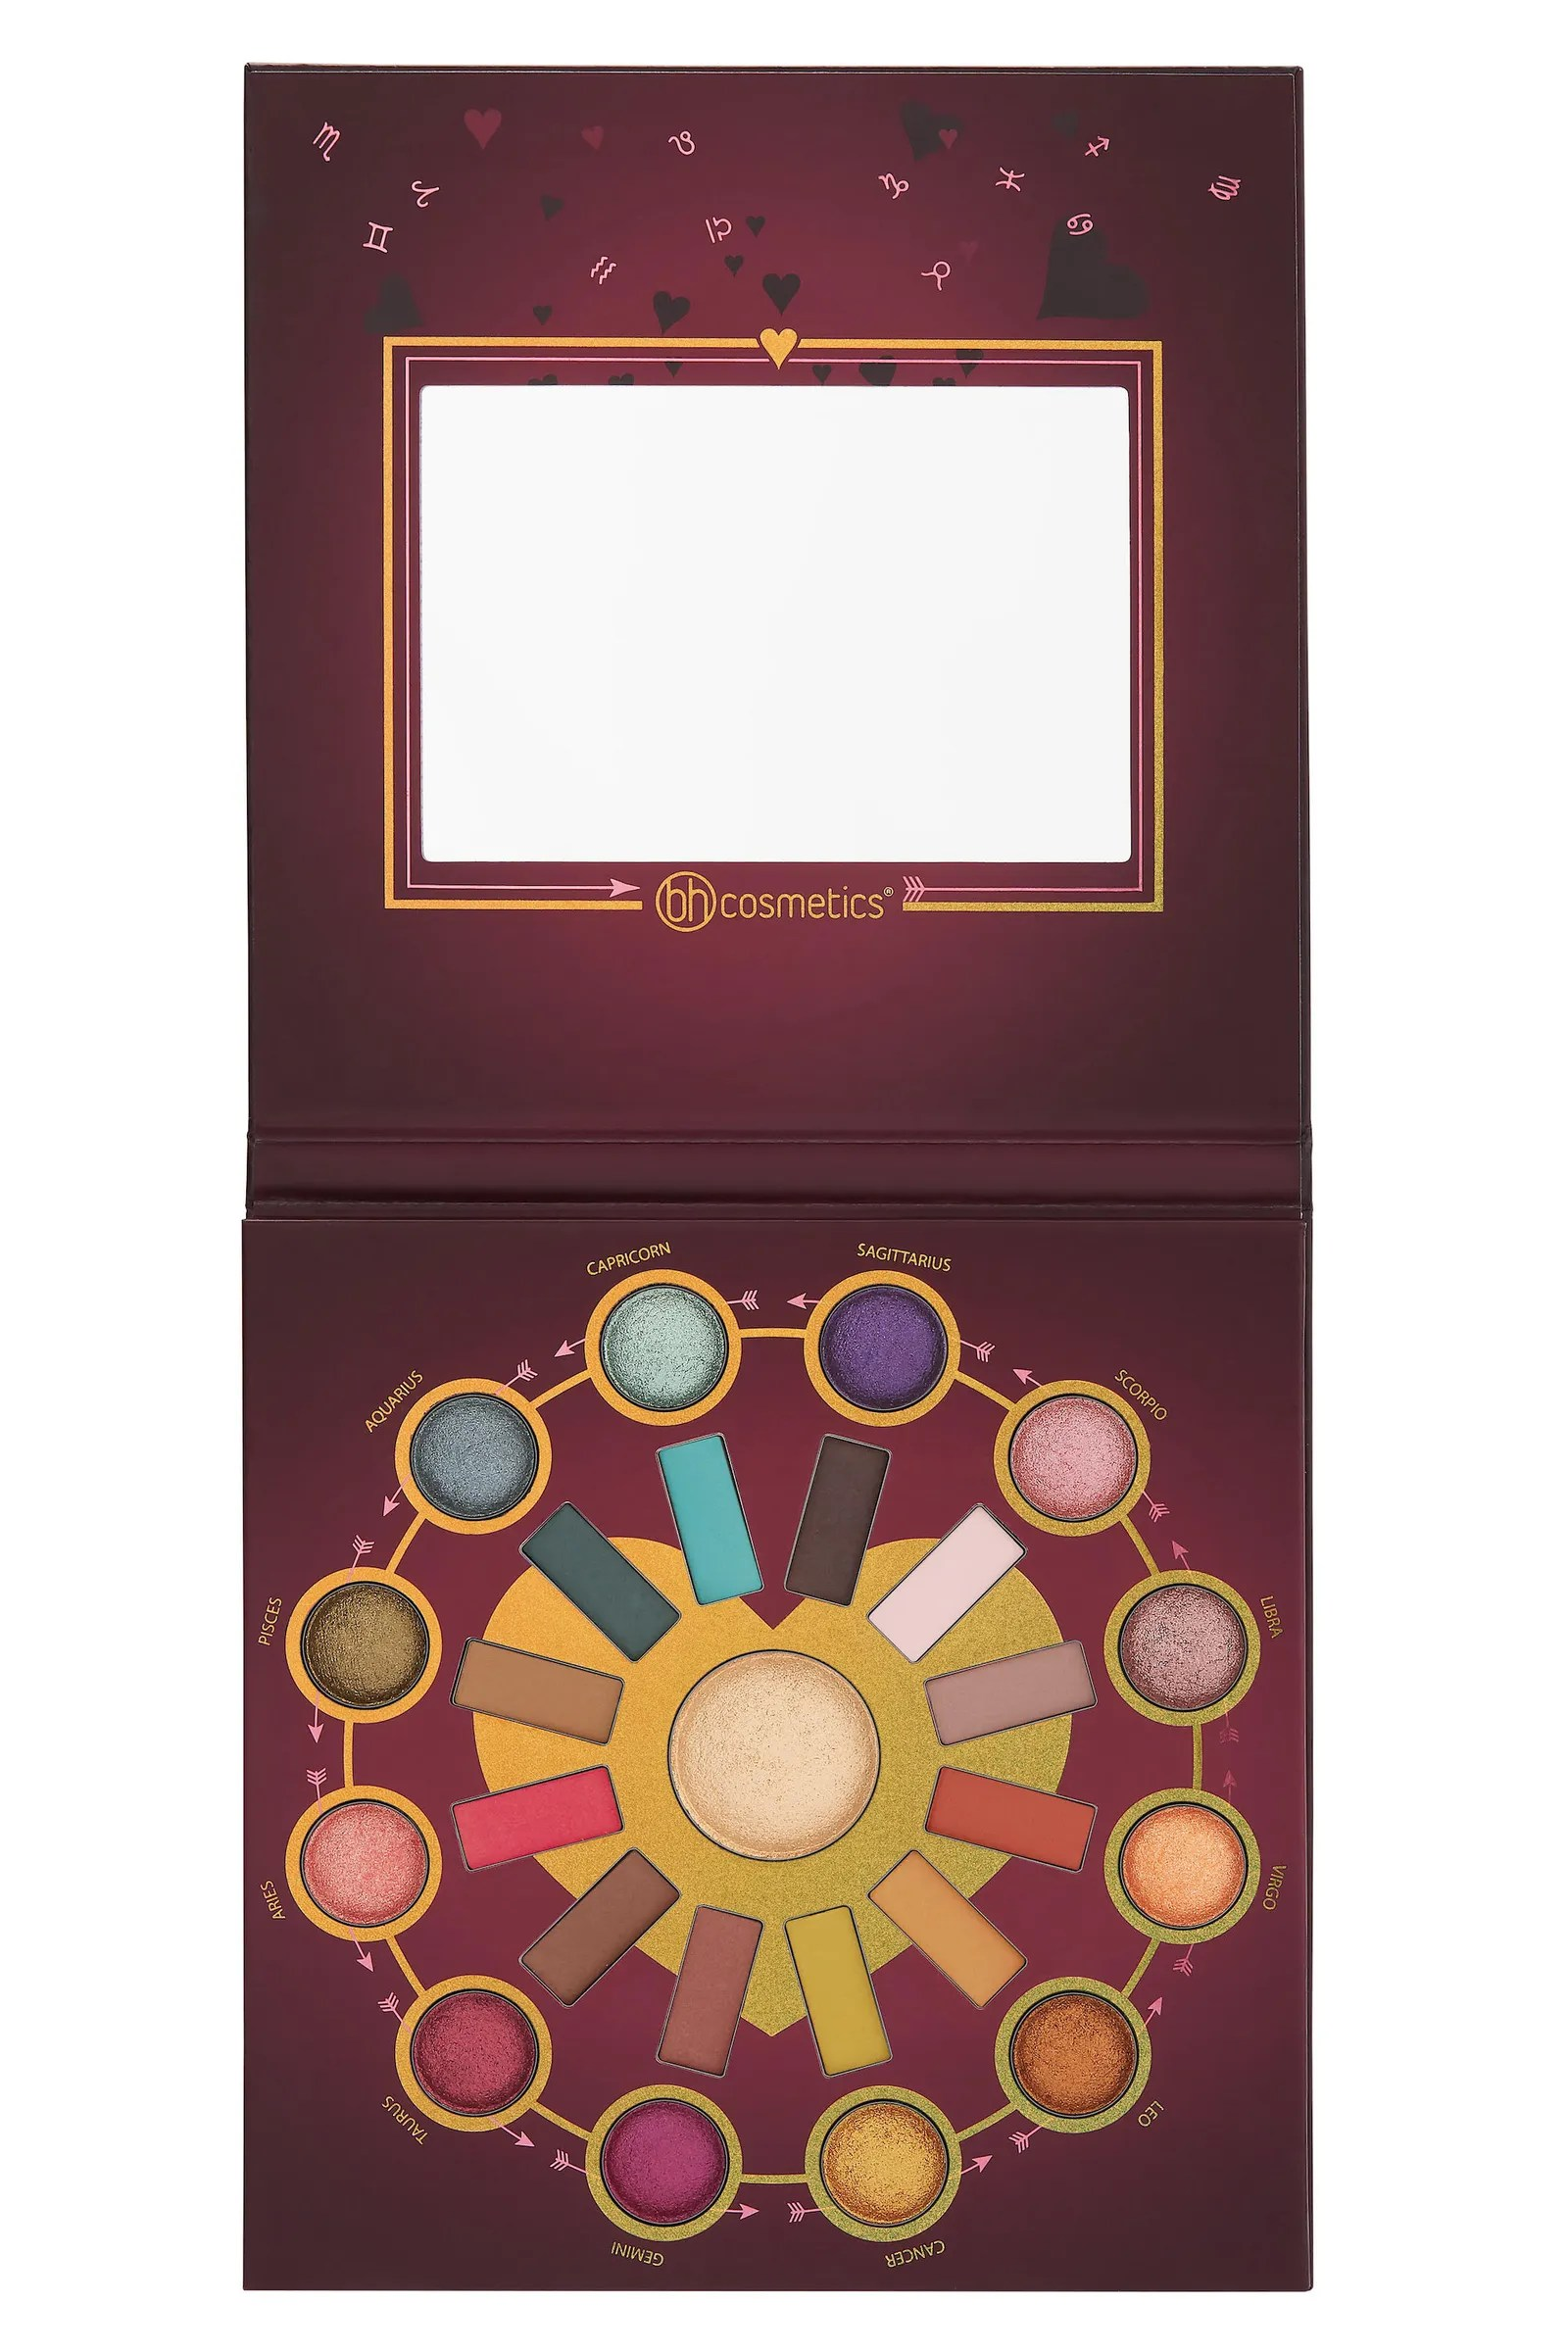 Paletten Bilder Bh Cosmetics To Launch Zodiac Love Signs Eye Shadow Palette Allure